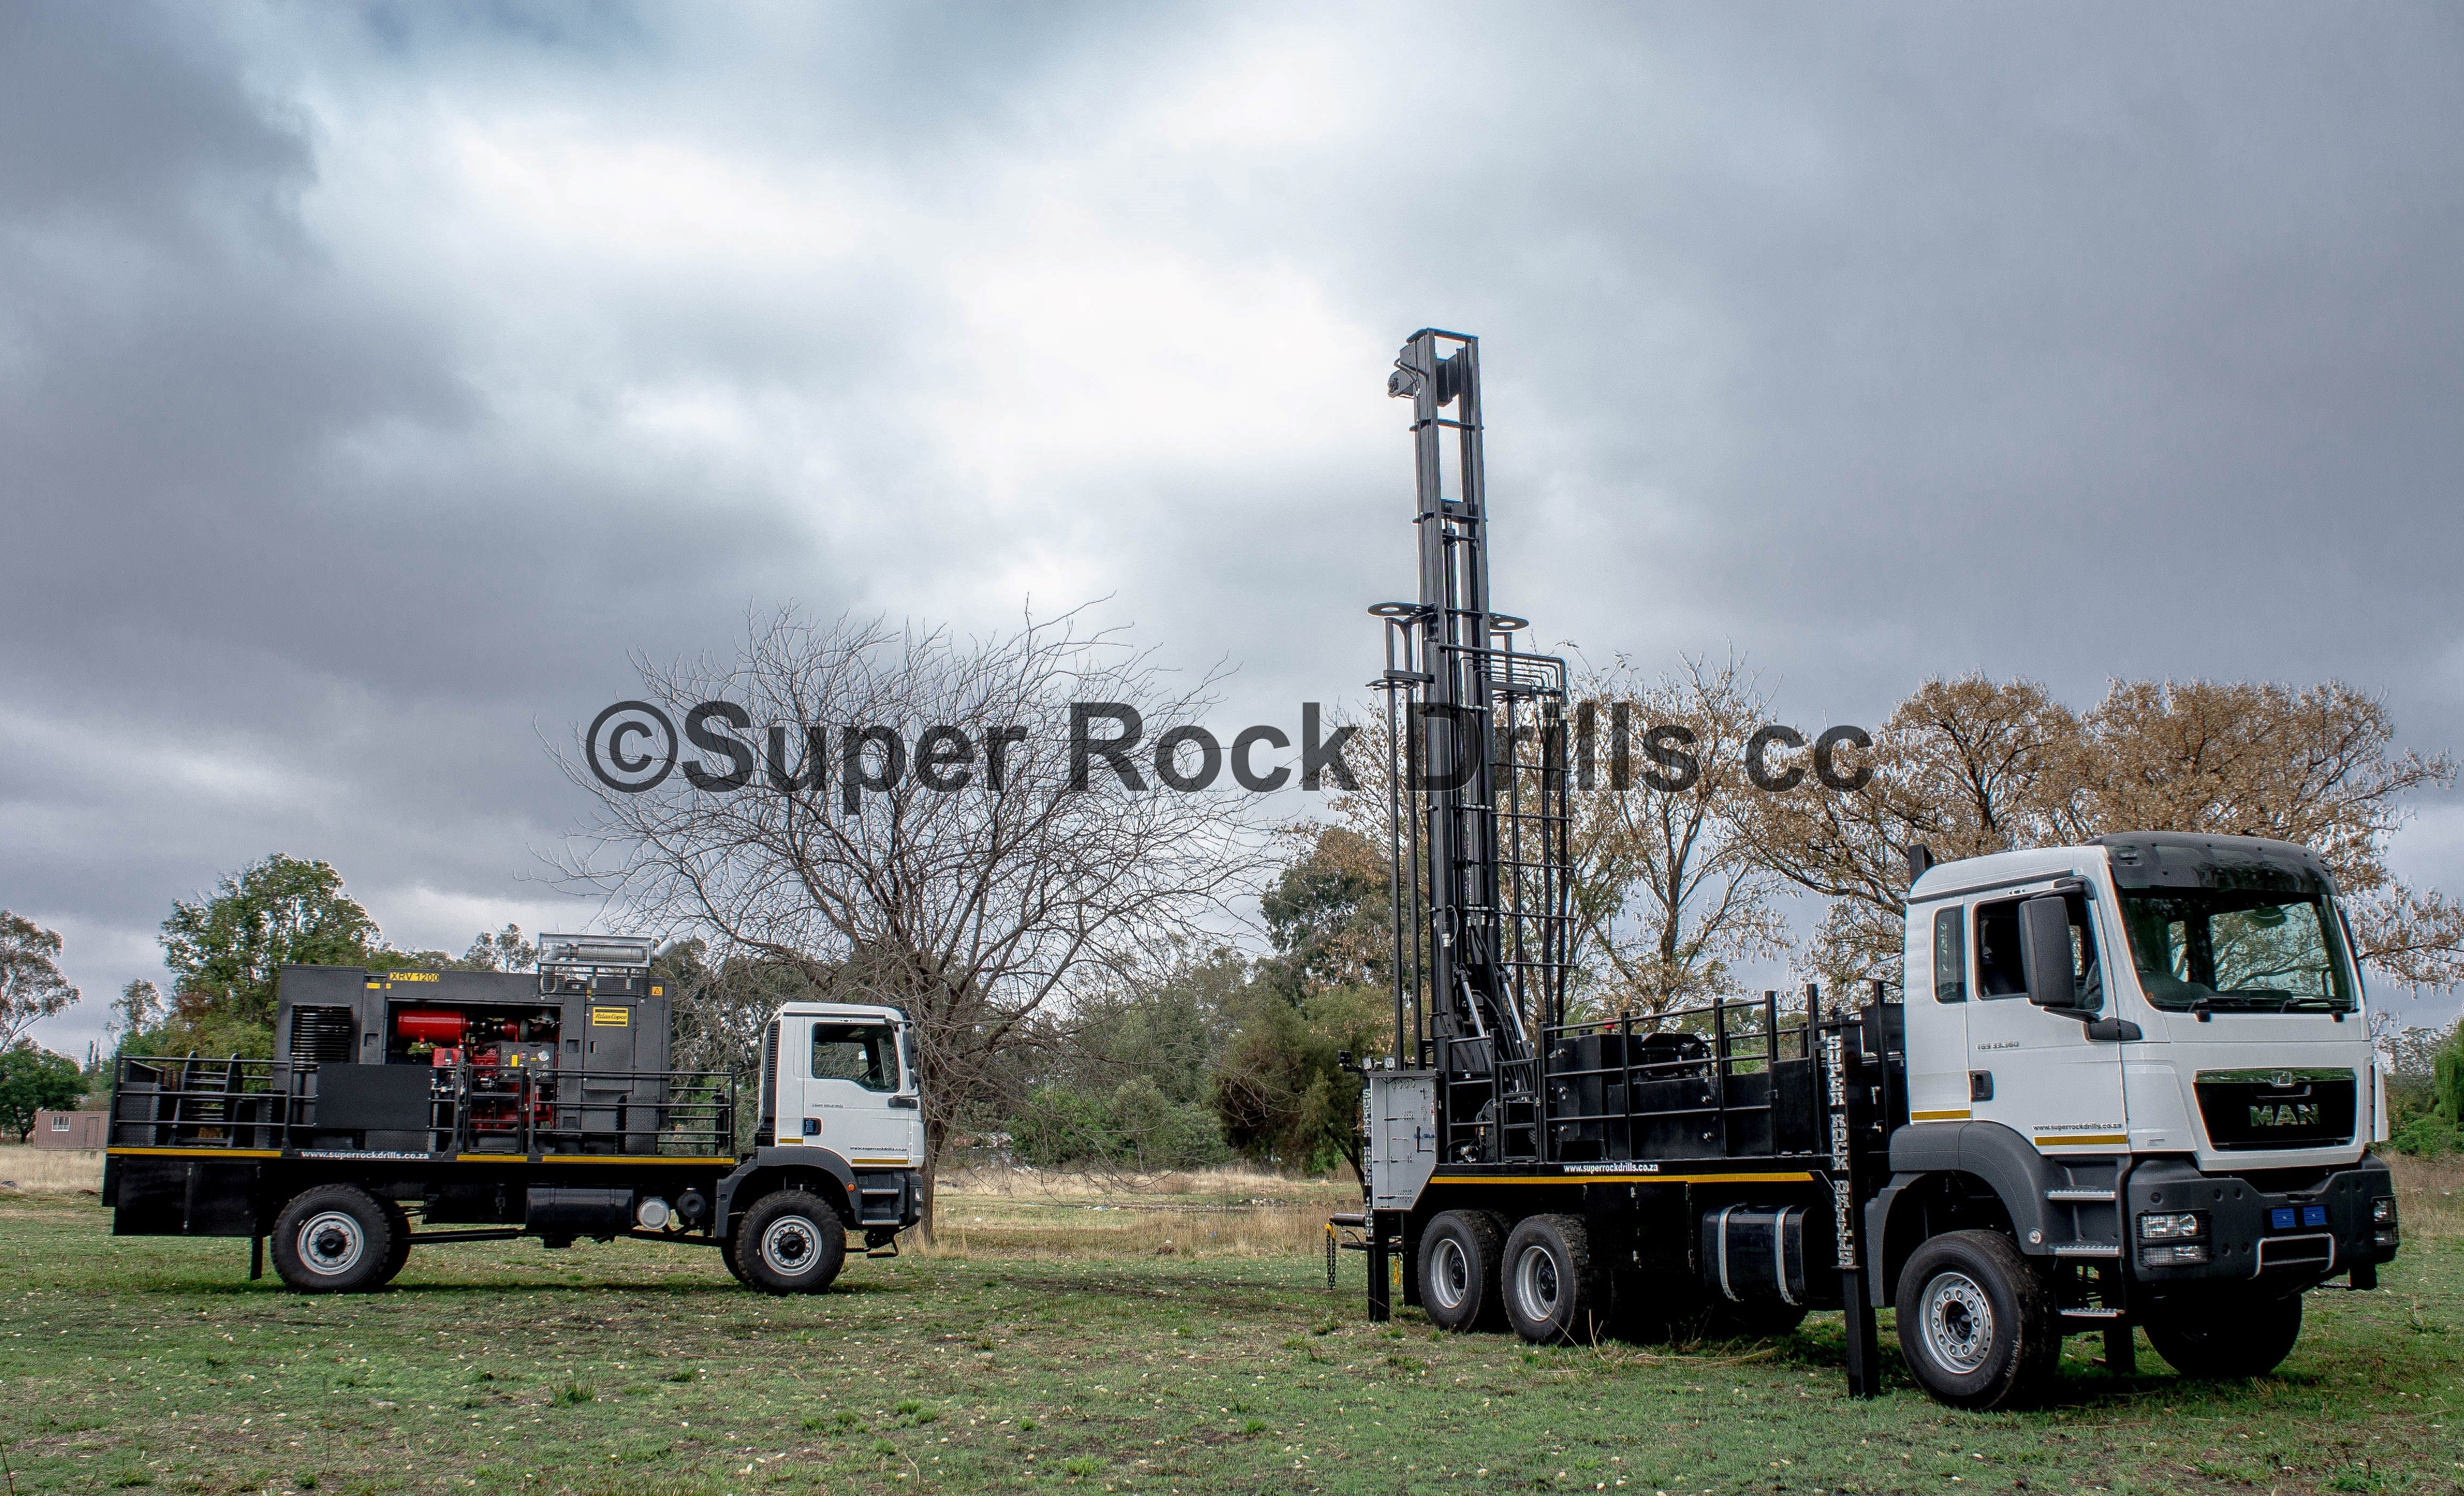 A Super Rock 1000 water well drill rig c/w separate truck mounted